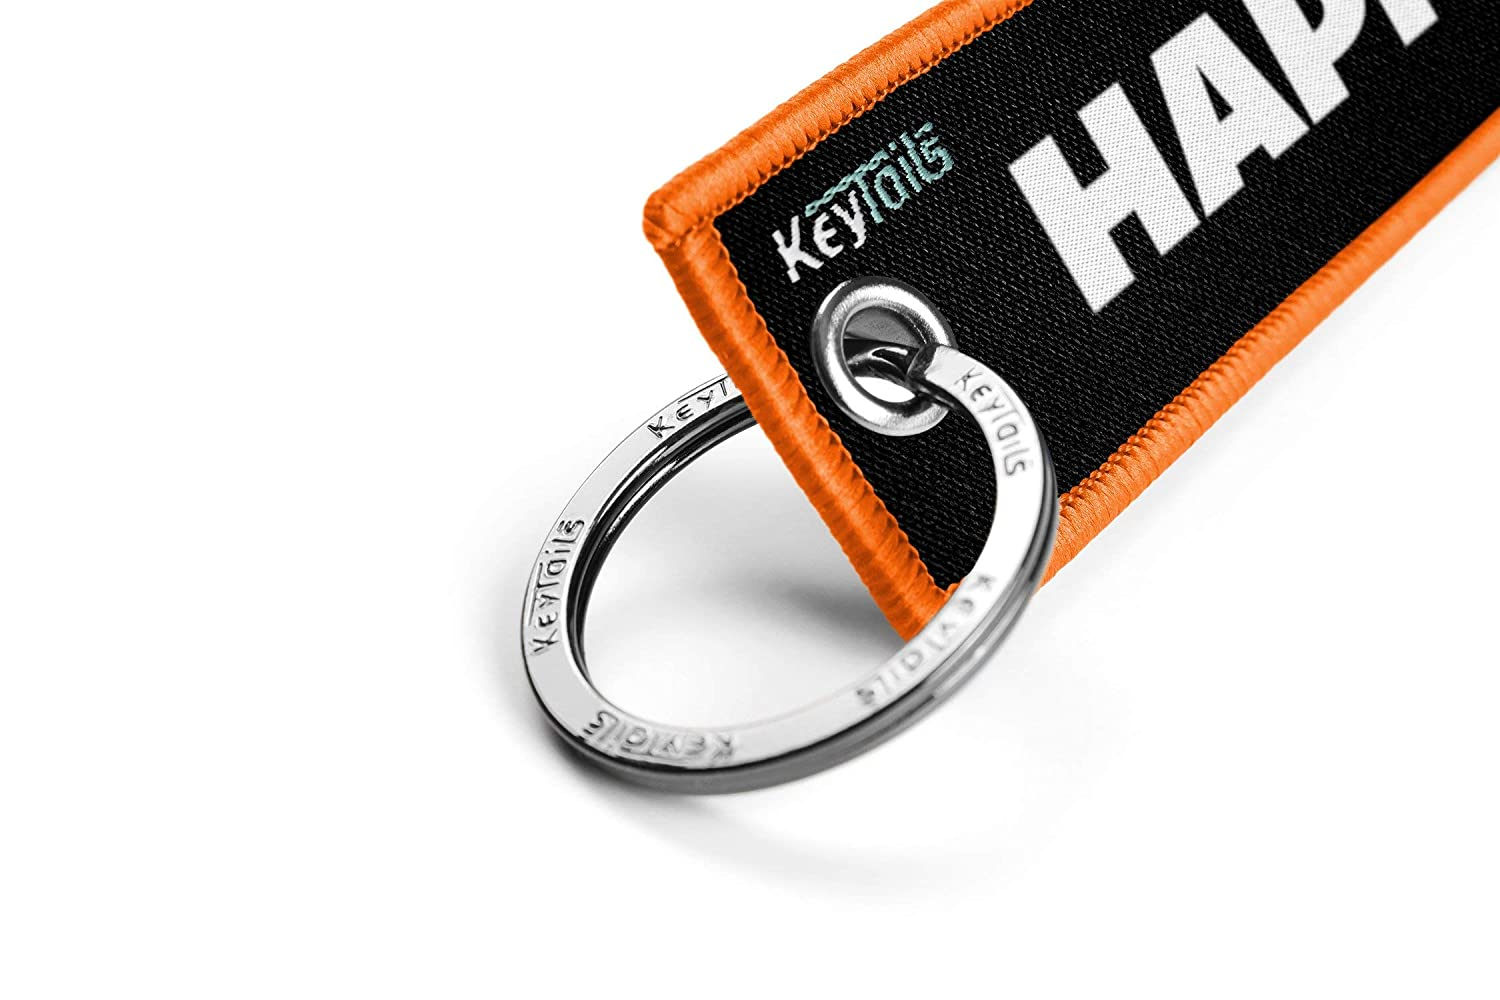 UTV ATV KEYTAILS Keychains Premium Quality Key Tag for Motorcycle Key to Happiness Scooter Car